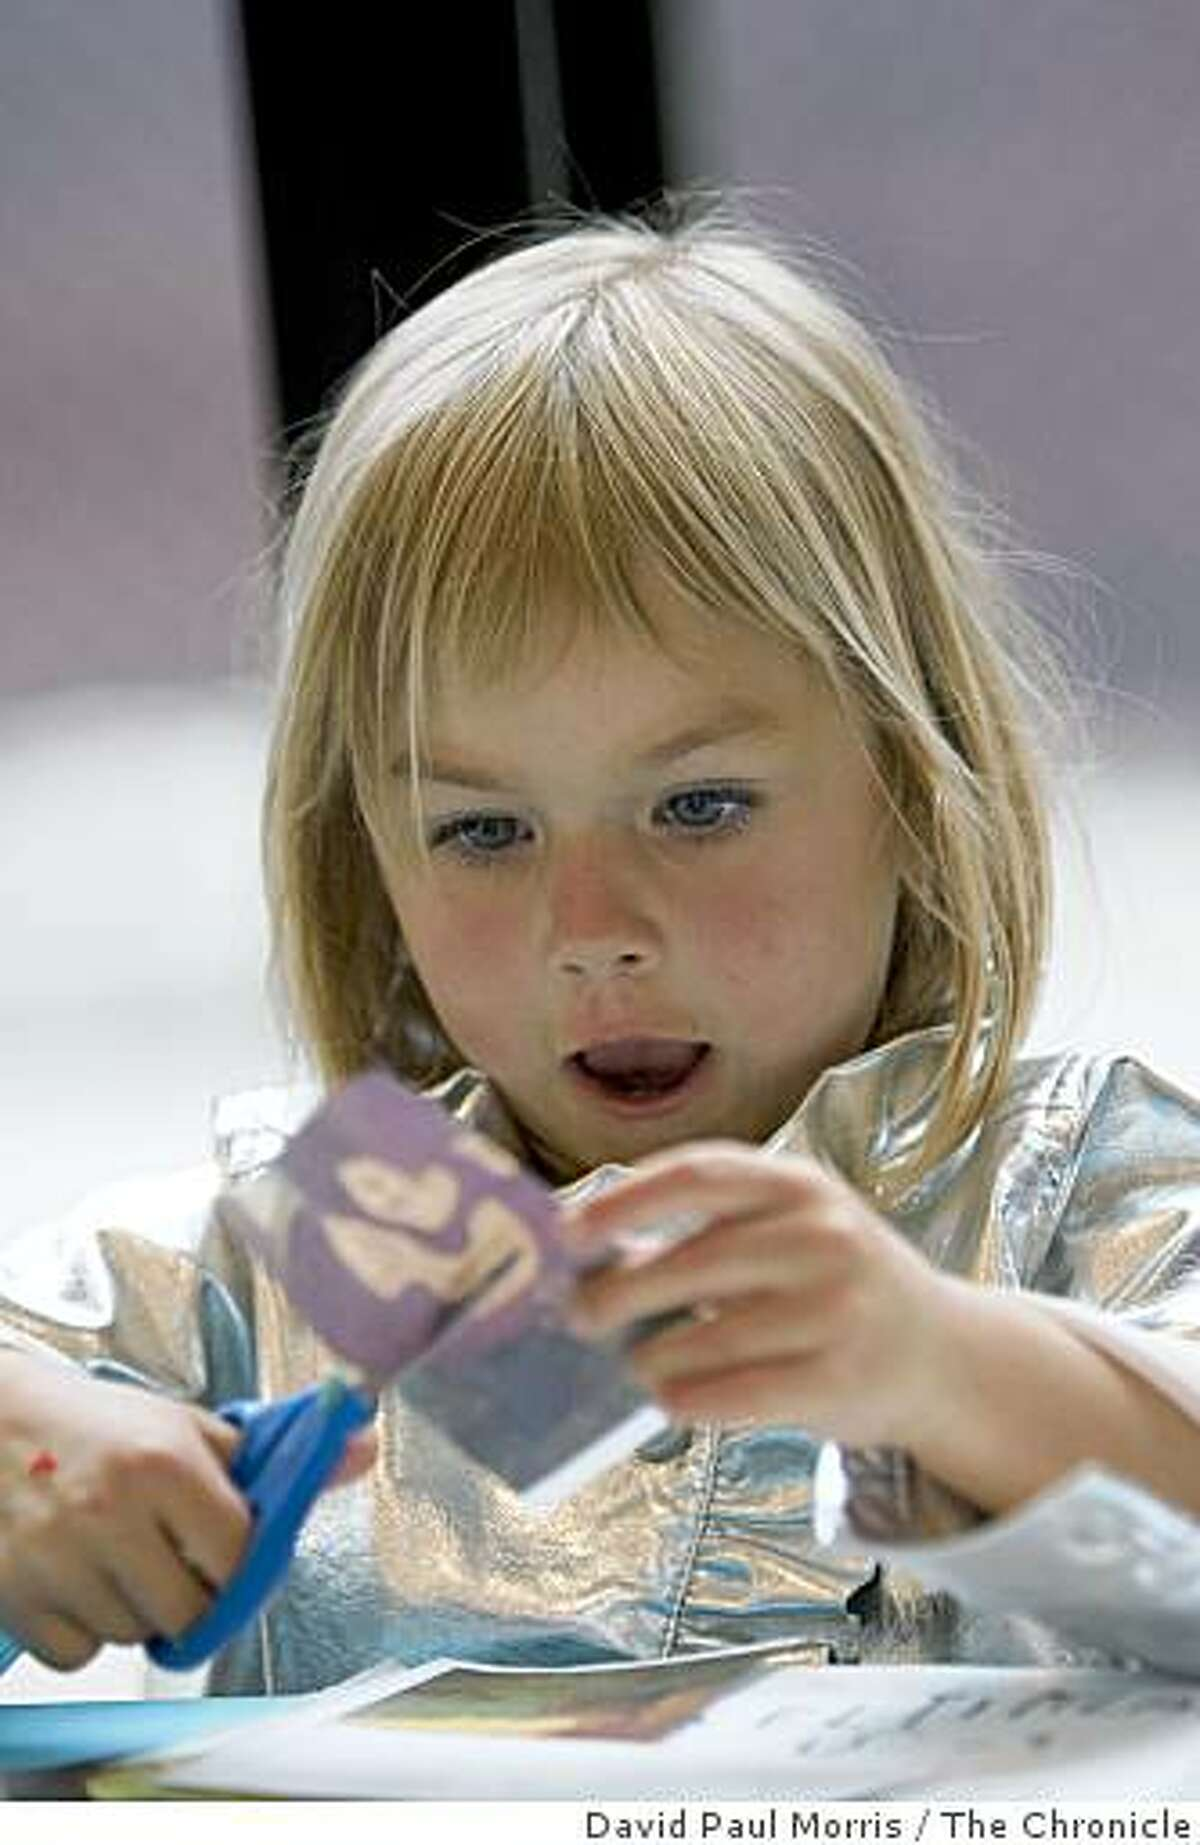 Delilah Kaden, 3 1/2 from San Francisco cuts out paper pictures during cultural encounters Friday Nights at the de Young Museum in Golden Gate Park May 29, 2009 in San Francisco, Calif. (Photograph by David Paul Morris/The Chronicle)